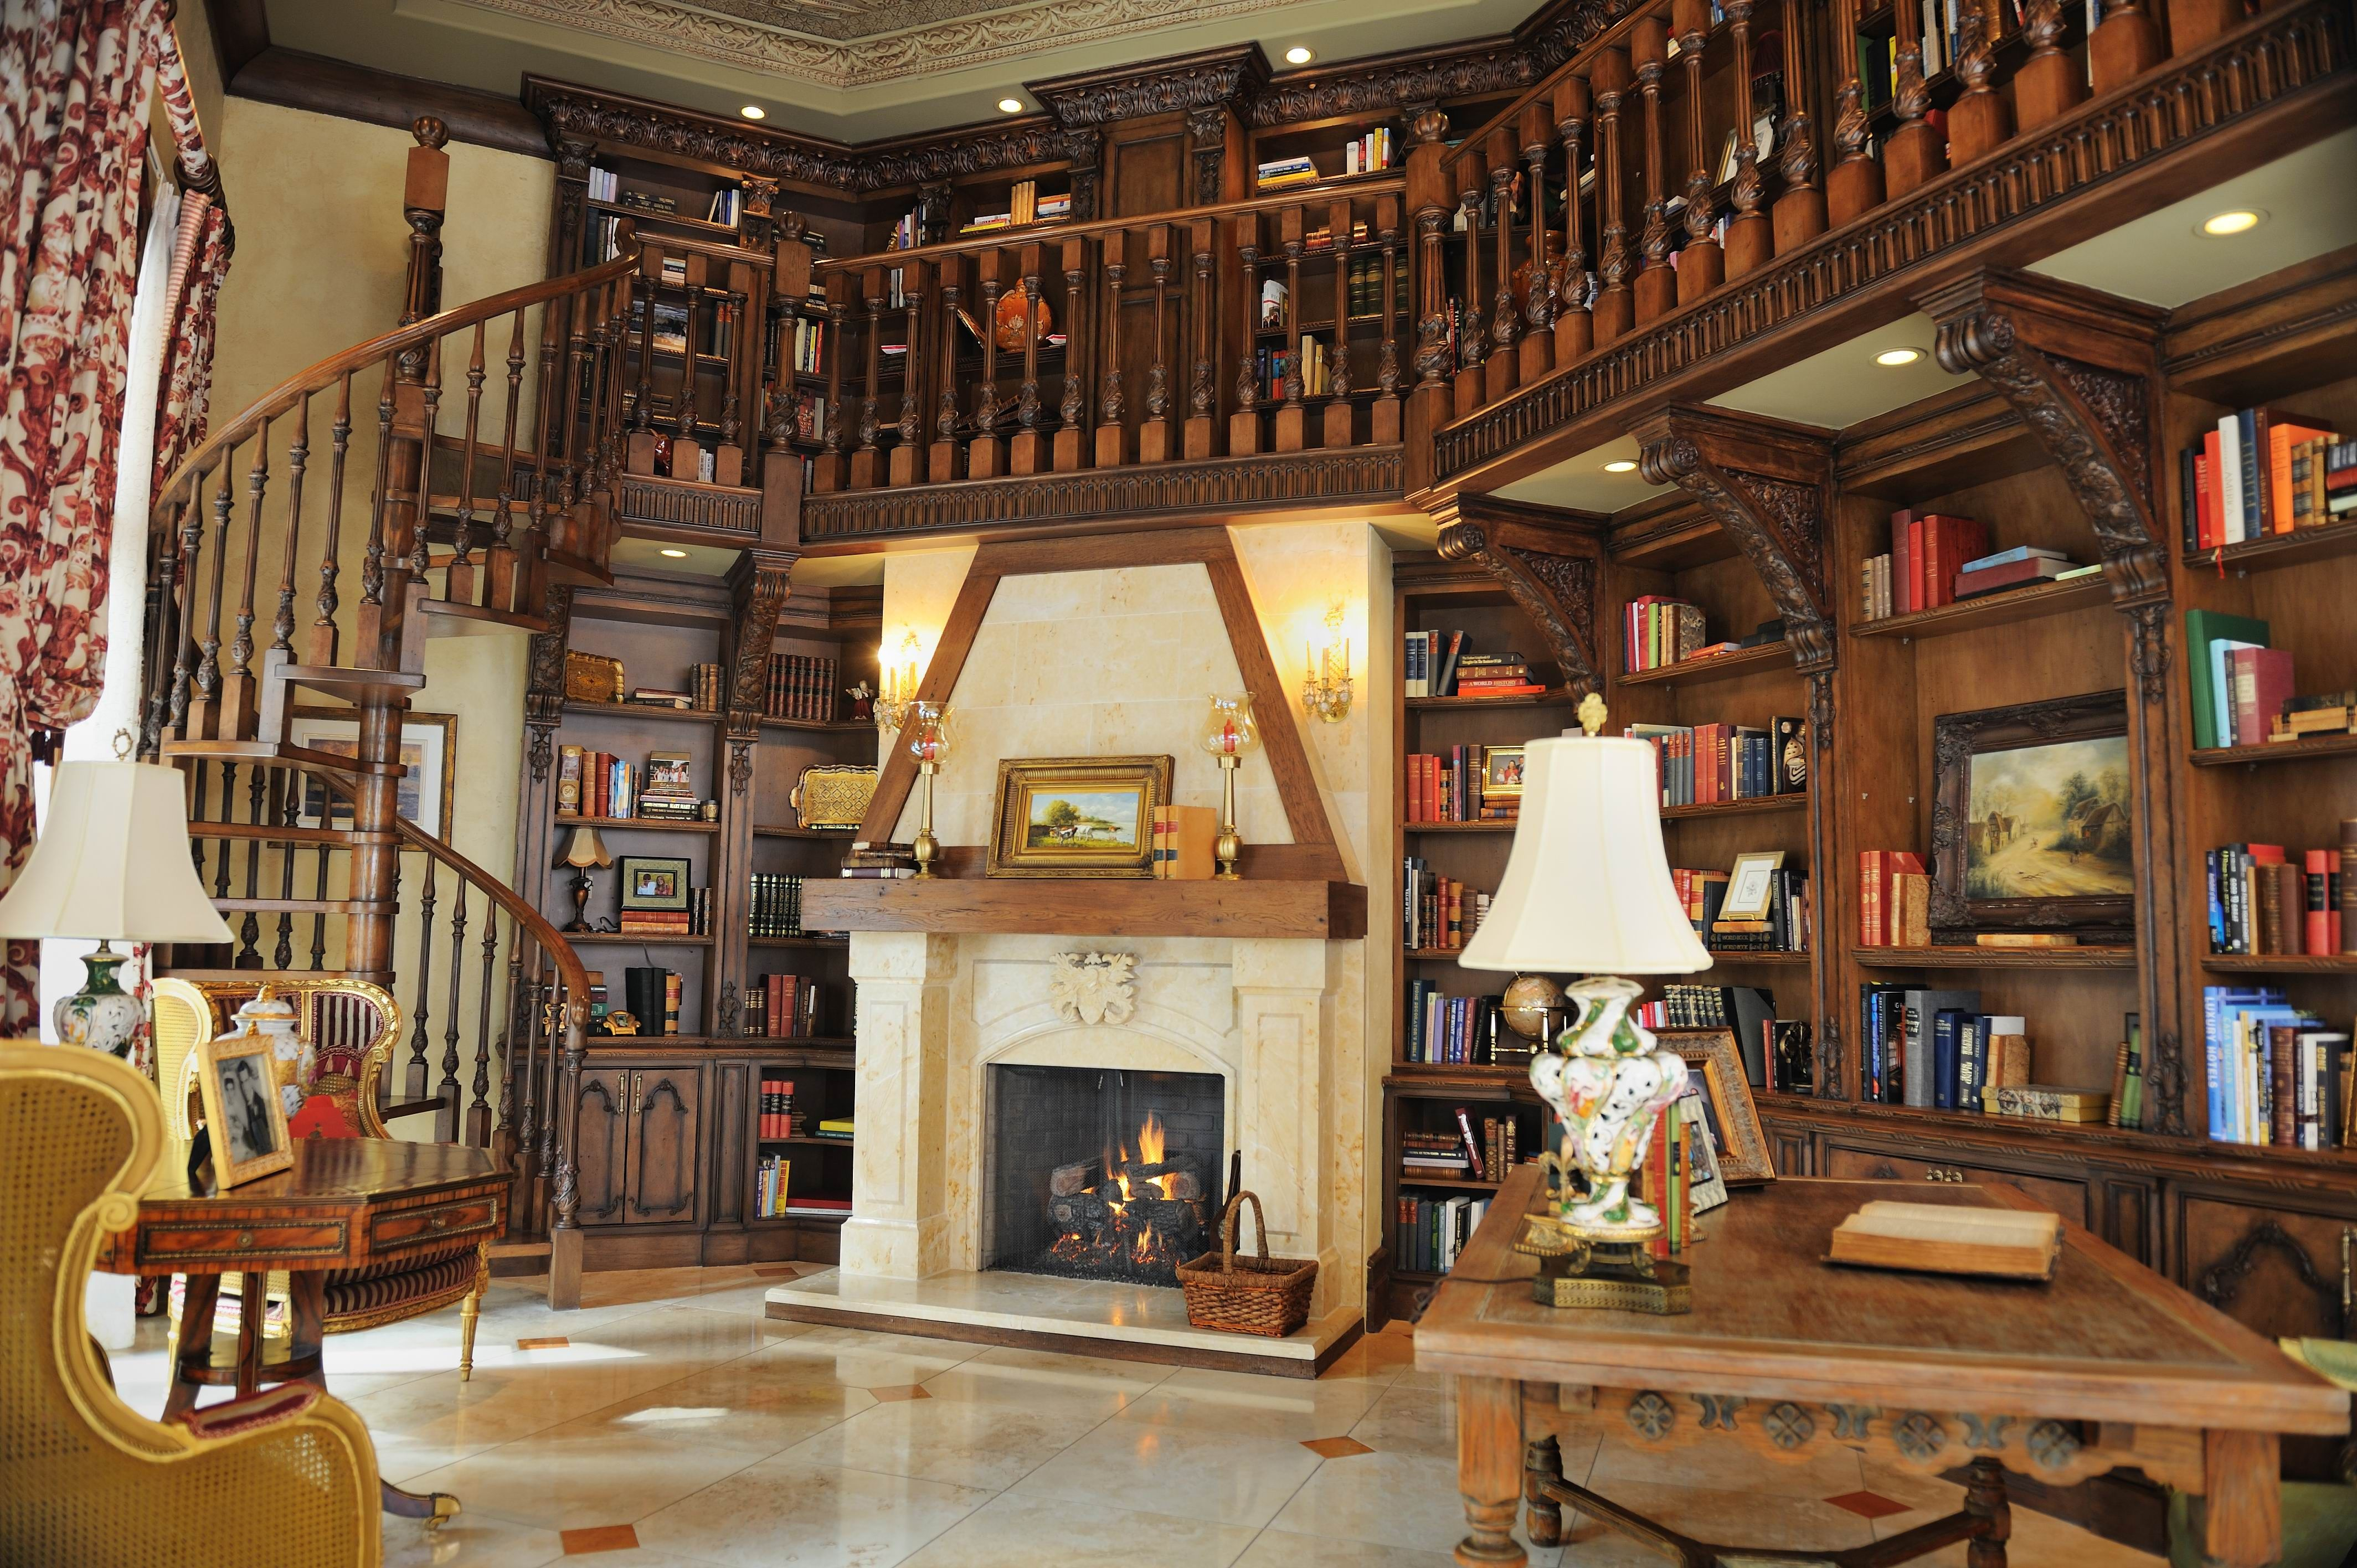 DSC0177mainlibraryB.jpg (4256×2832) | Dream house rooms, Home library design,  Luxury house designs